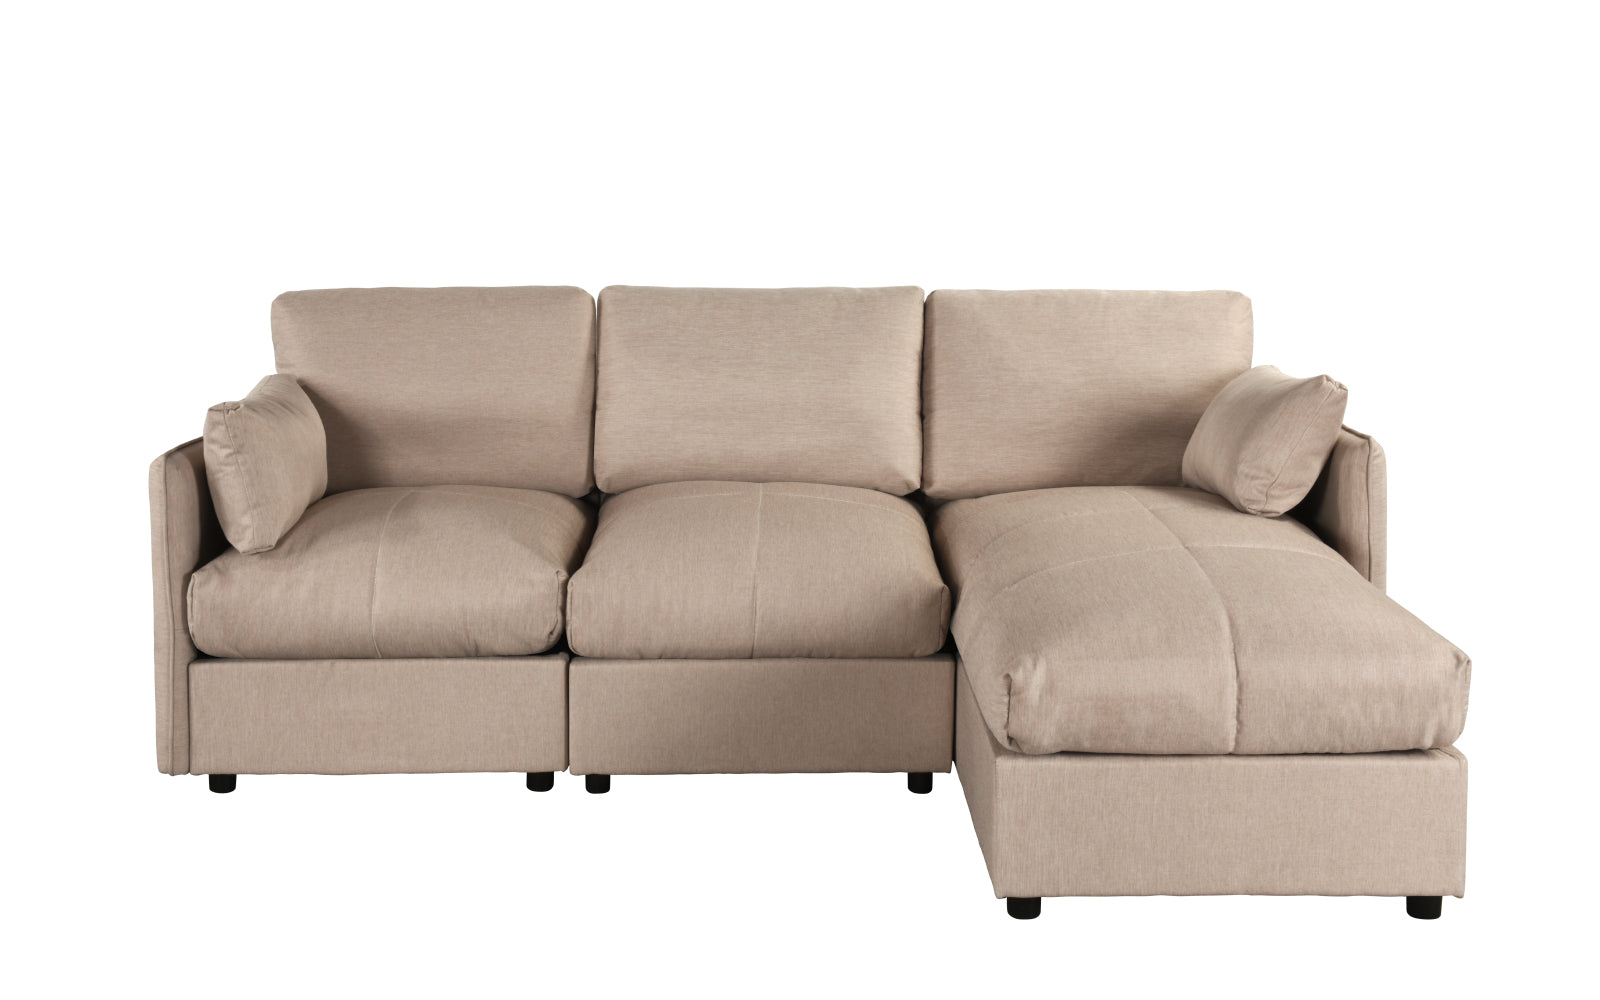 Wondrous Nour Contemporary L Shape Sectional Sofa Bralicious Painted Fabric Chair Ideas Braliciousco